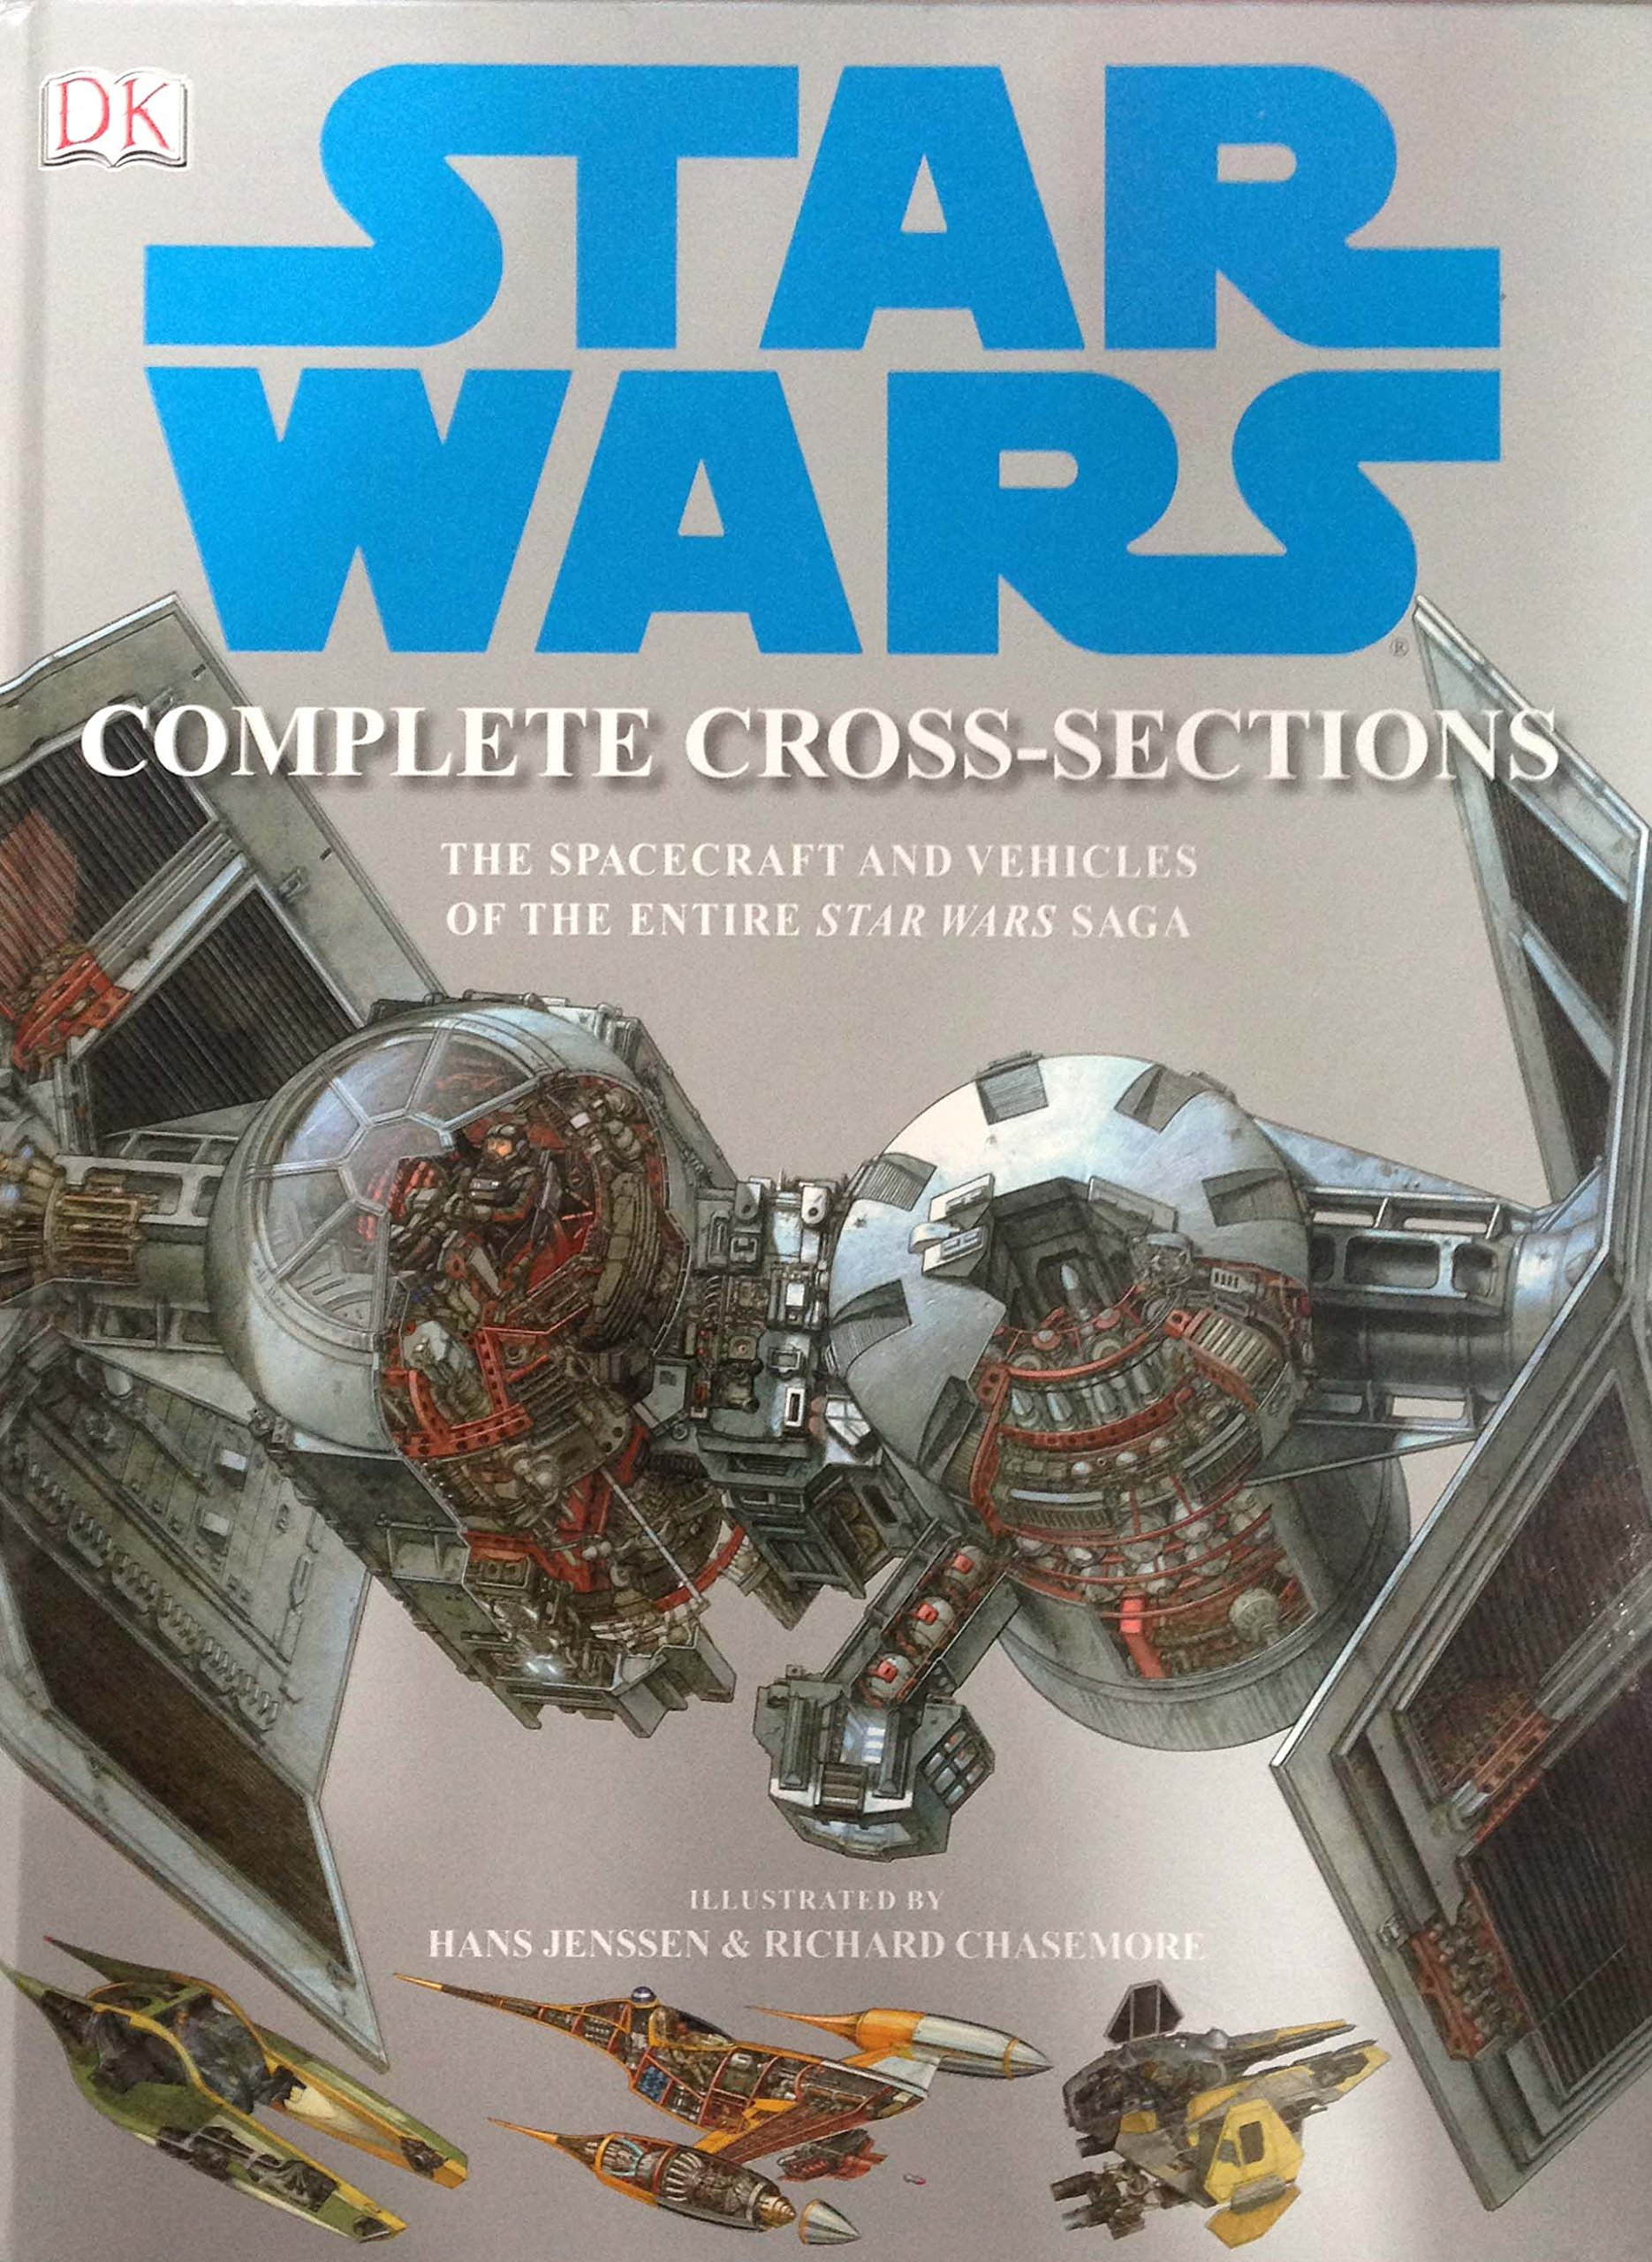 Inspirational star wars coffee table book for Inspirational coffee table books